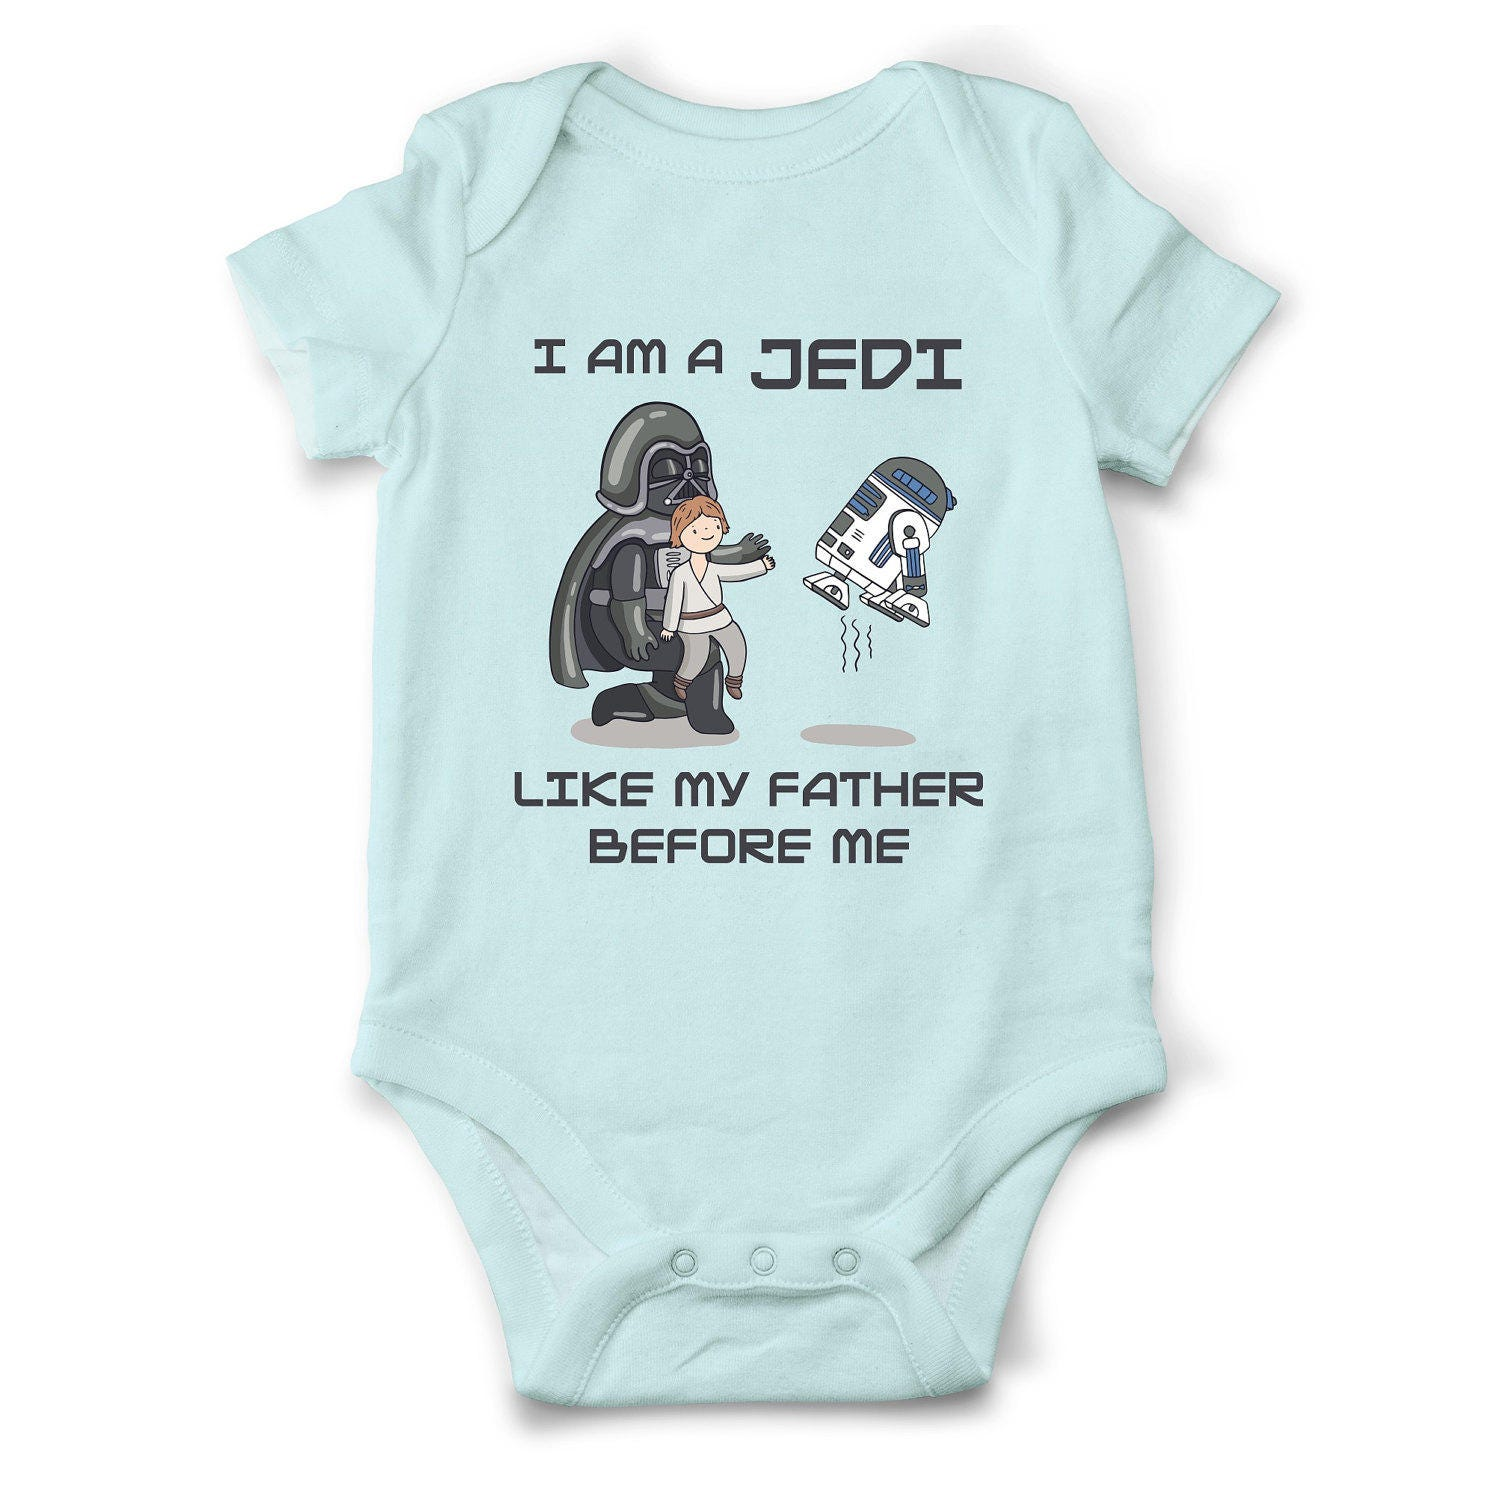 star wars baby, star wars onesie, star wars baby clothes, star wars infant clothes, star wars baby outfit, star wars baby gifts, nerdy baby NerdyBabyClothingCo. 5 out of 5 stars (18) $ Favorite Add to See similar items + More like.